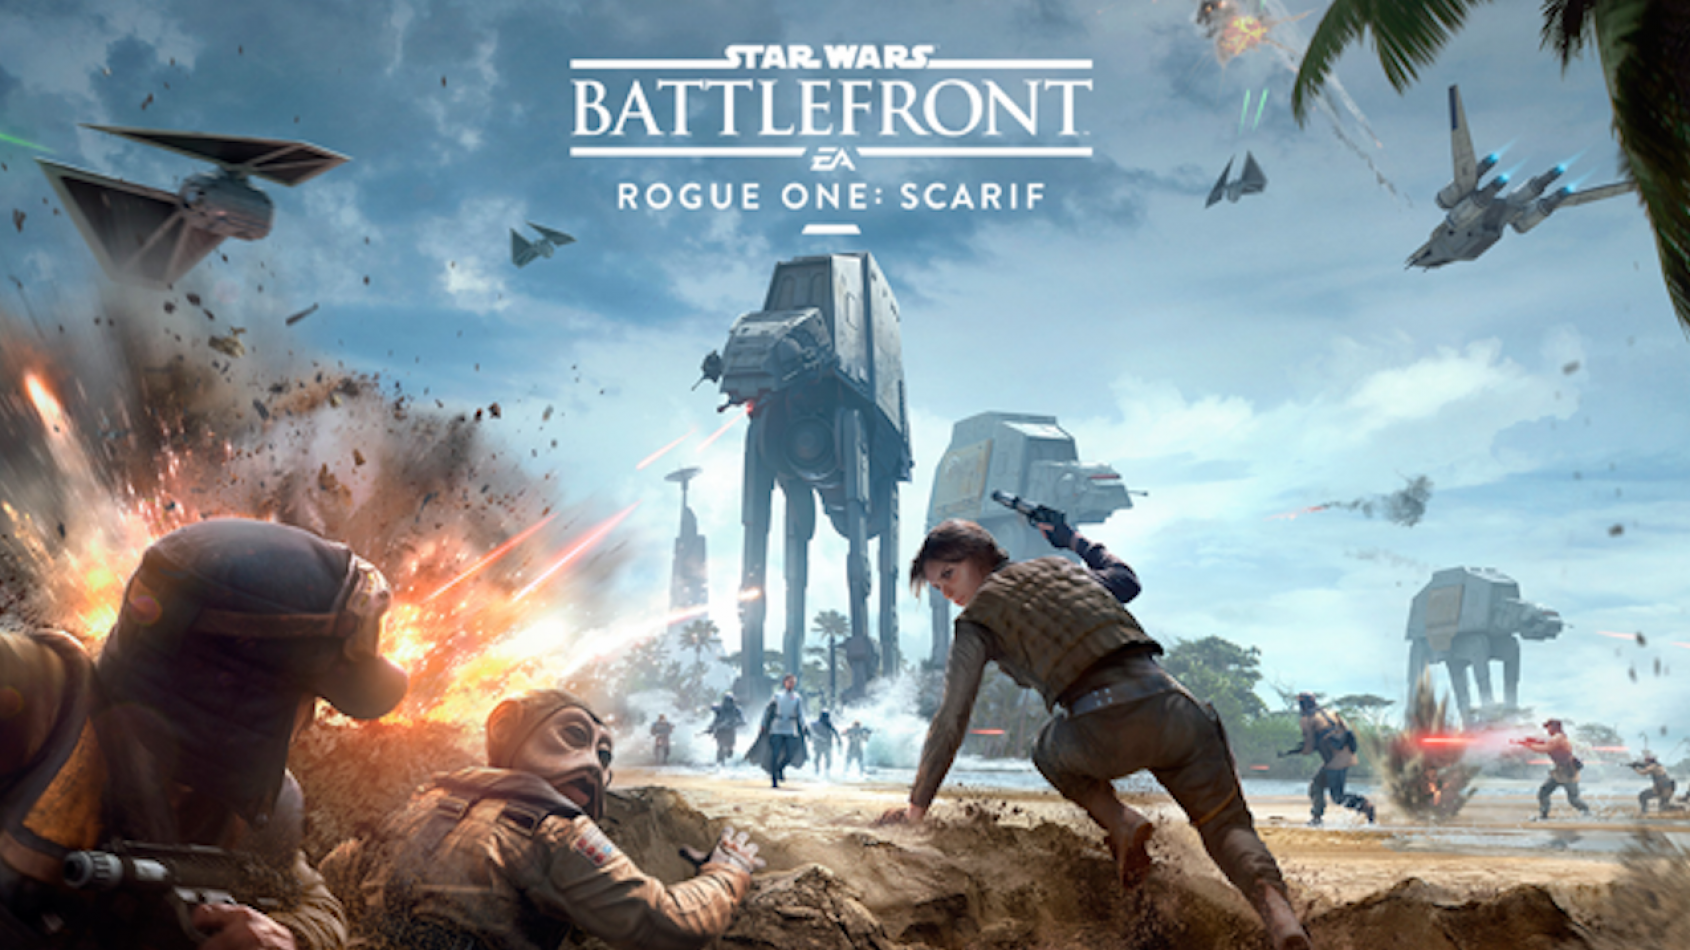 Un trailer pour Star Wars Battlefront - Rogue One: Scarif